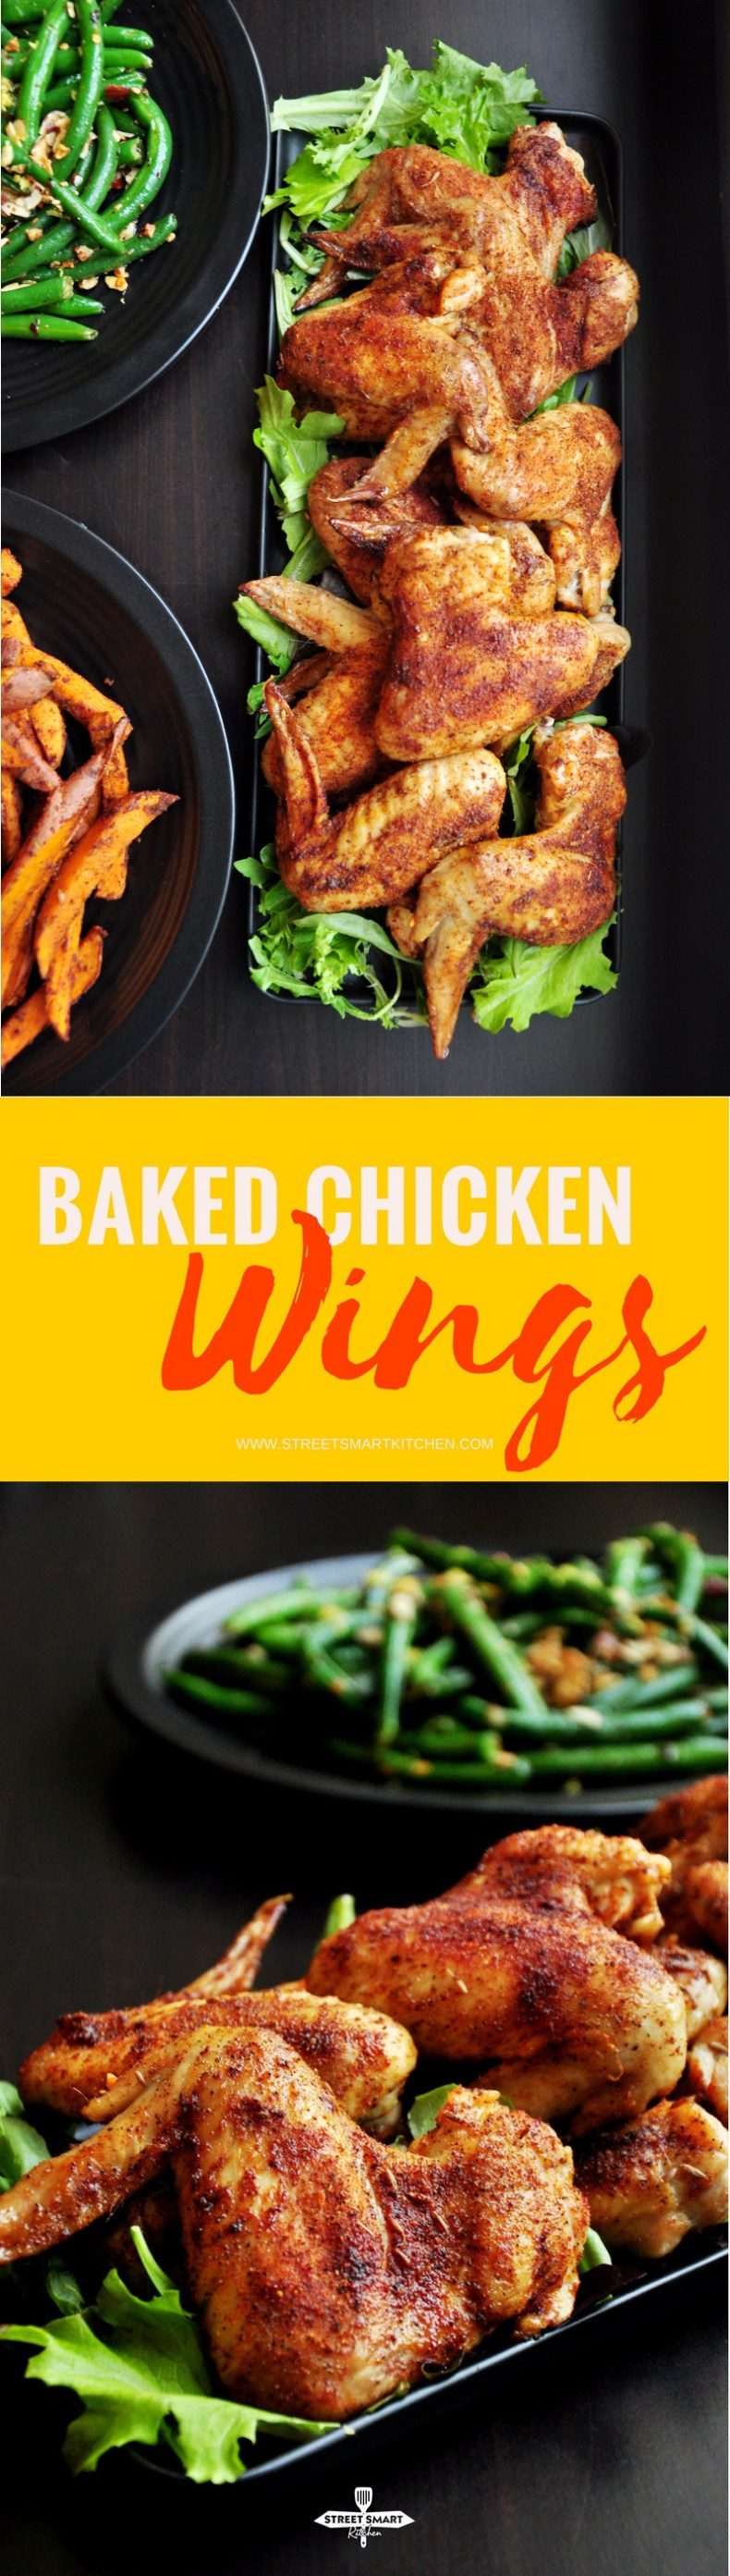 Baked Chicken Wings {Video}